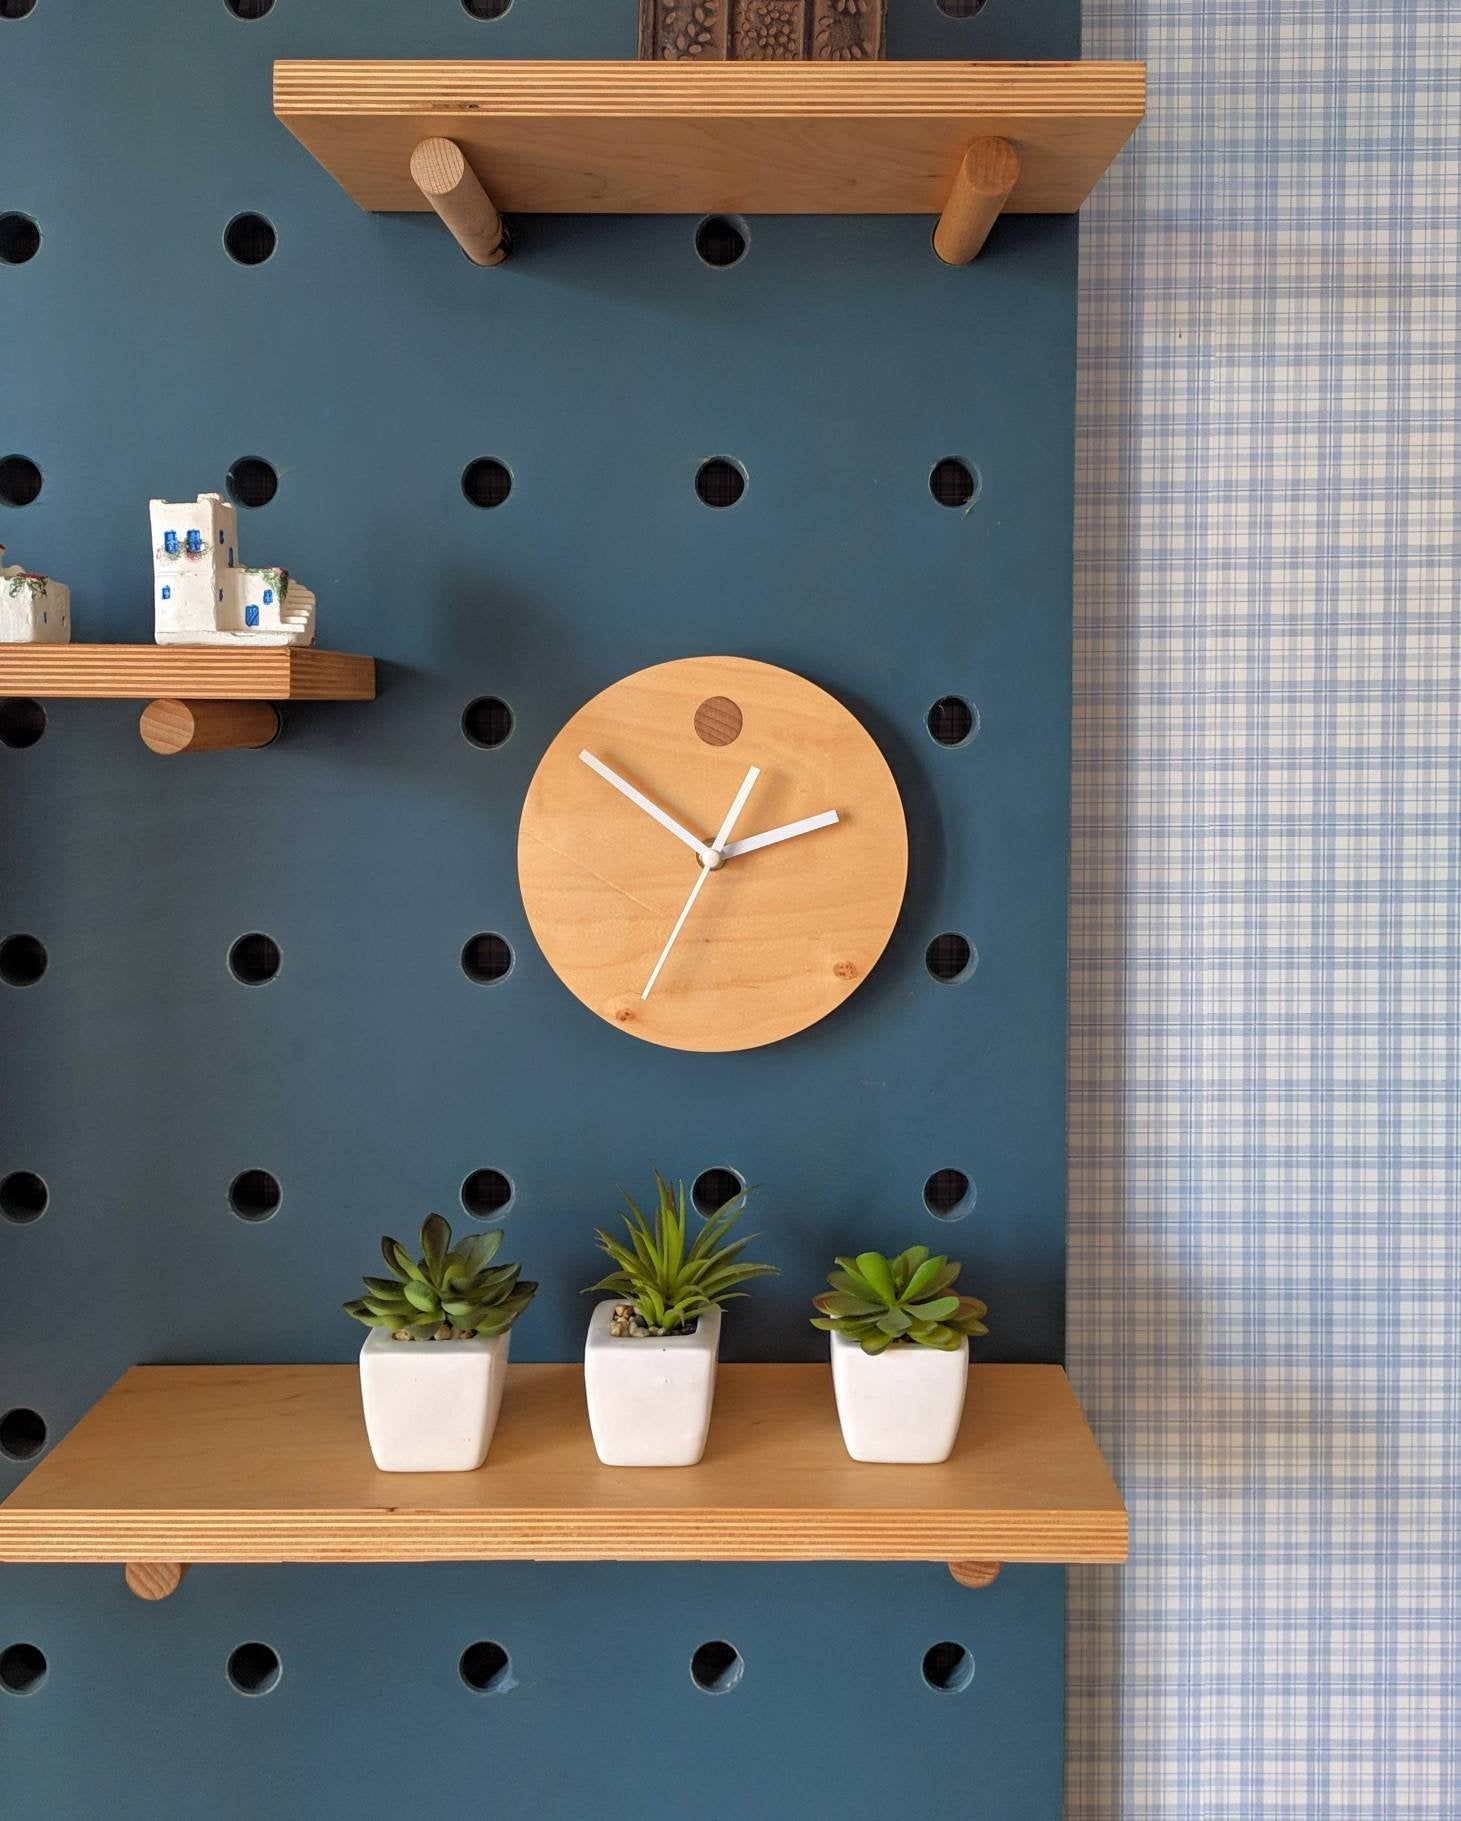 Photo of Plywood clock for pegboard organizer. Accessories for pegboards